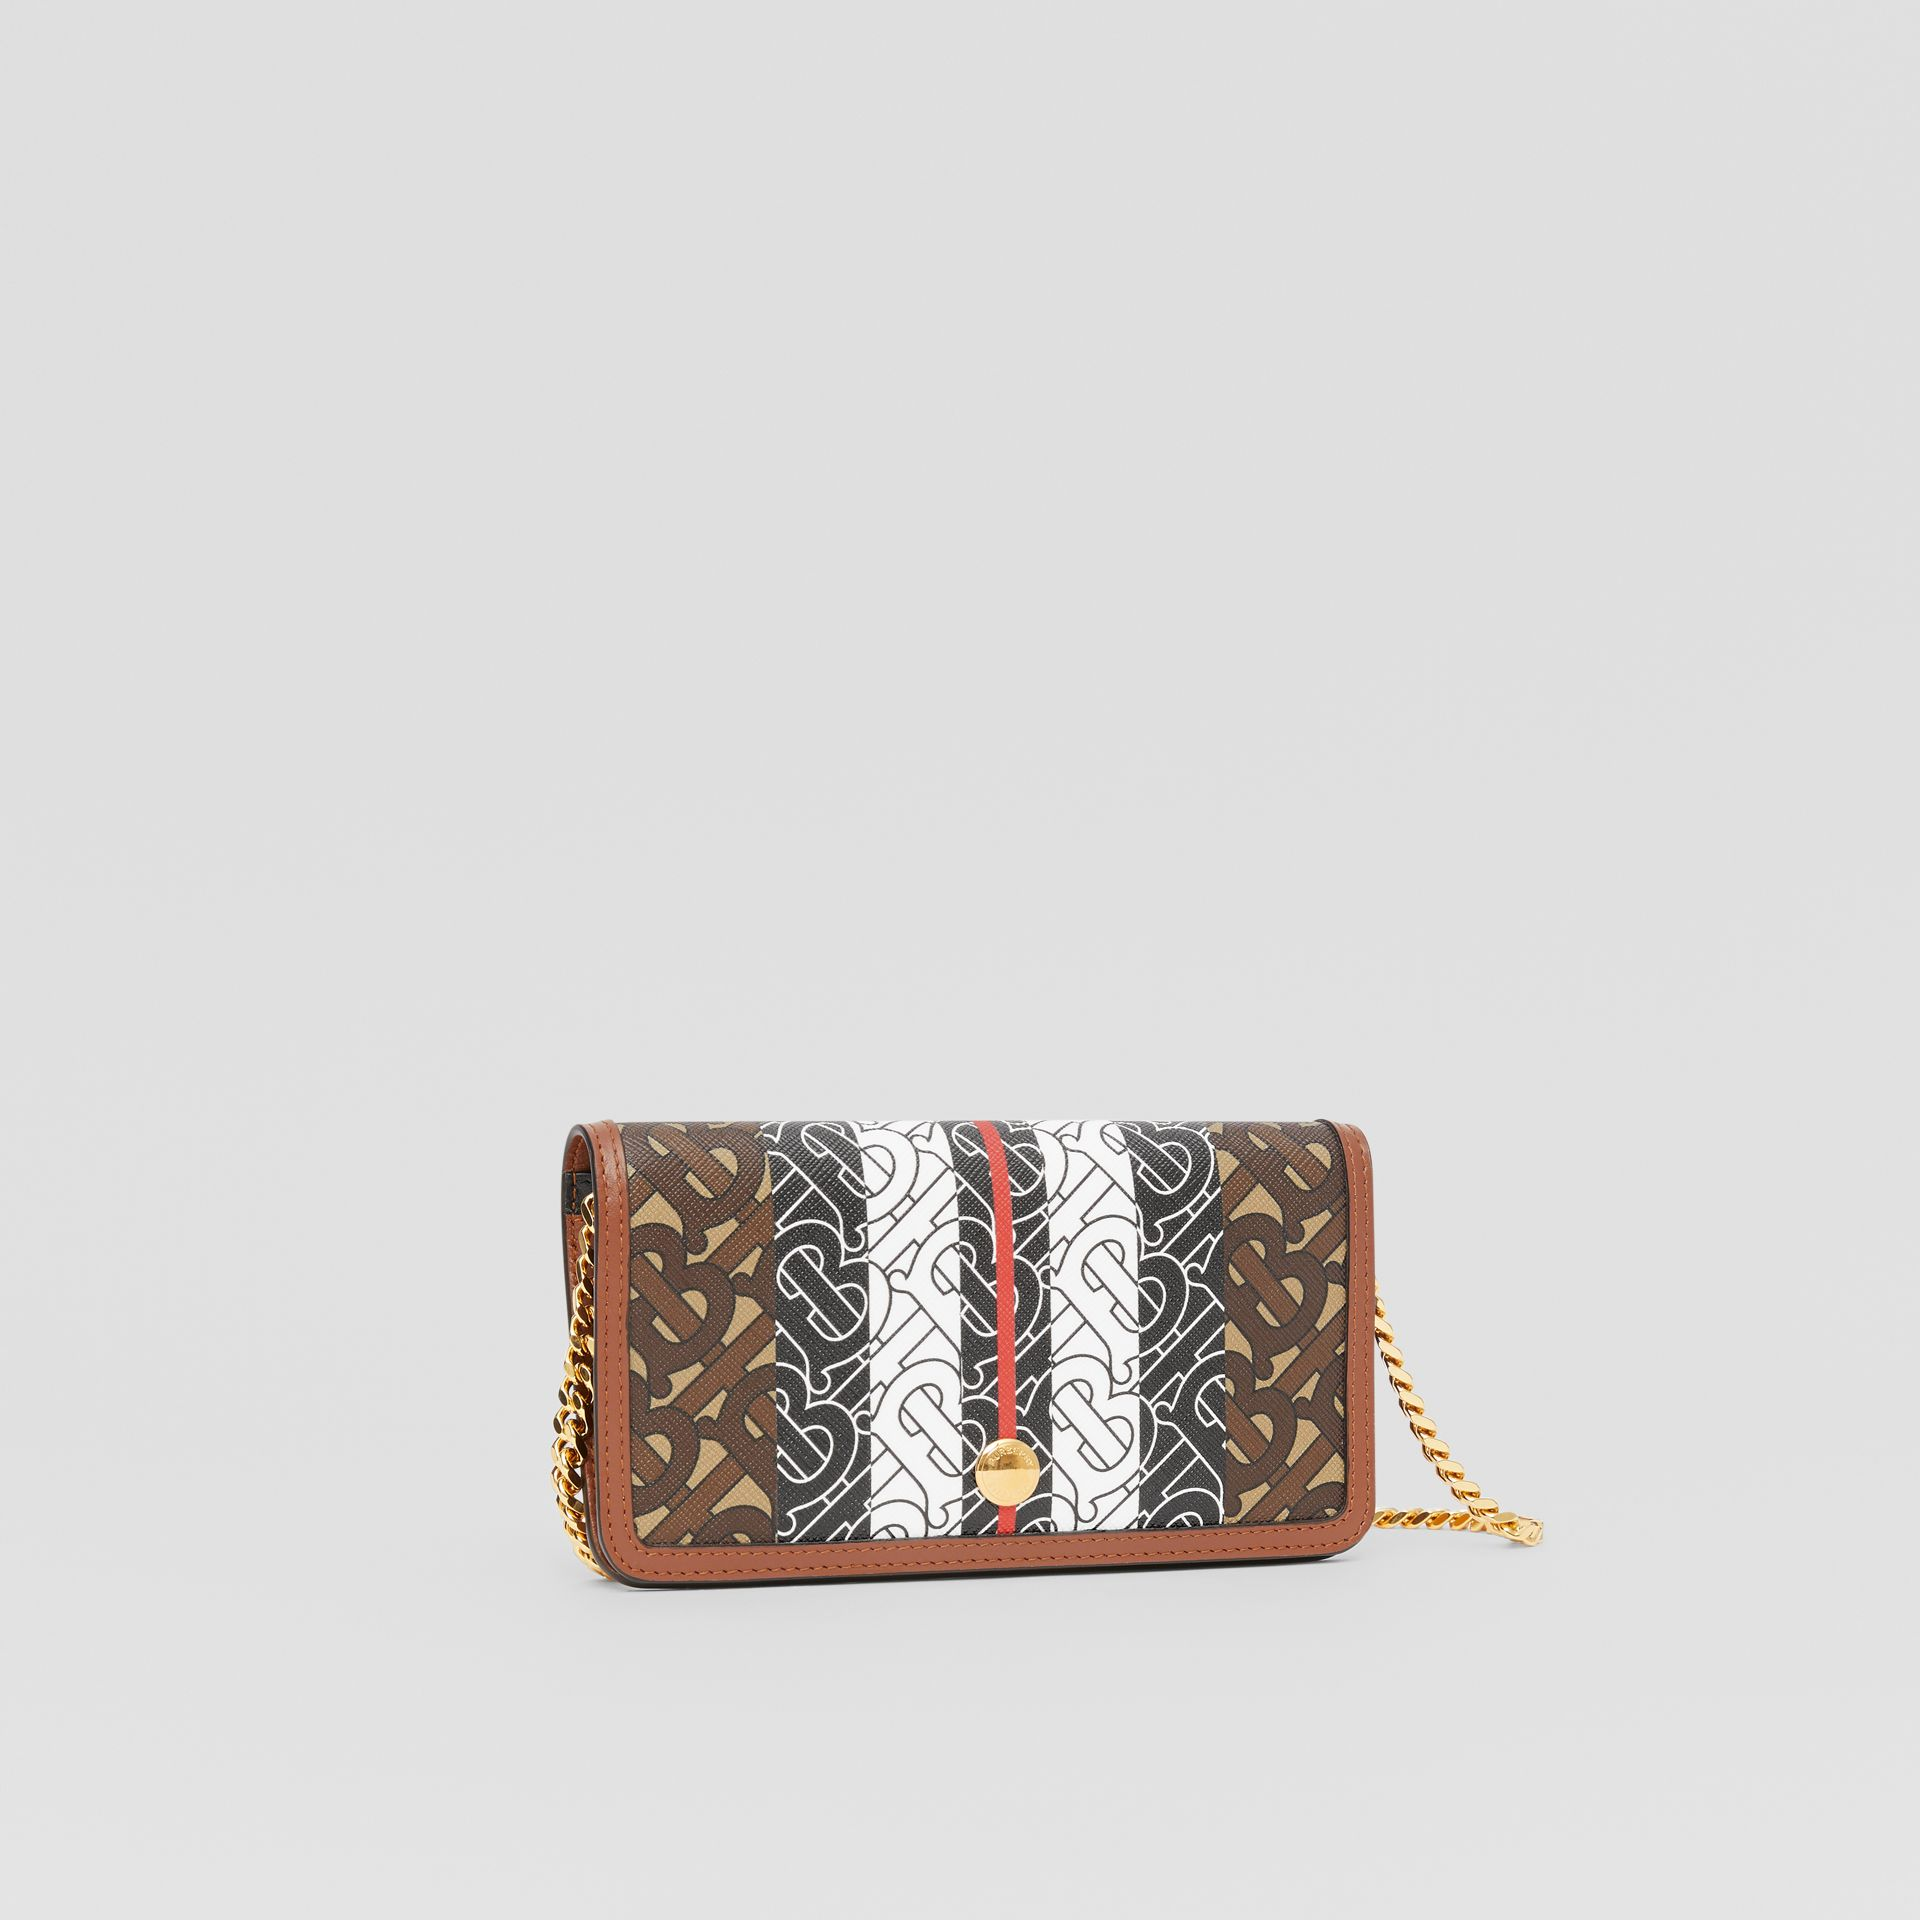 Monogram Stripe E-canvas Phone Wallet with Strap in Bridle Brown - Women | Burberry Hong Kong S.A.R - gallery image 6